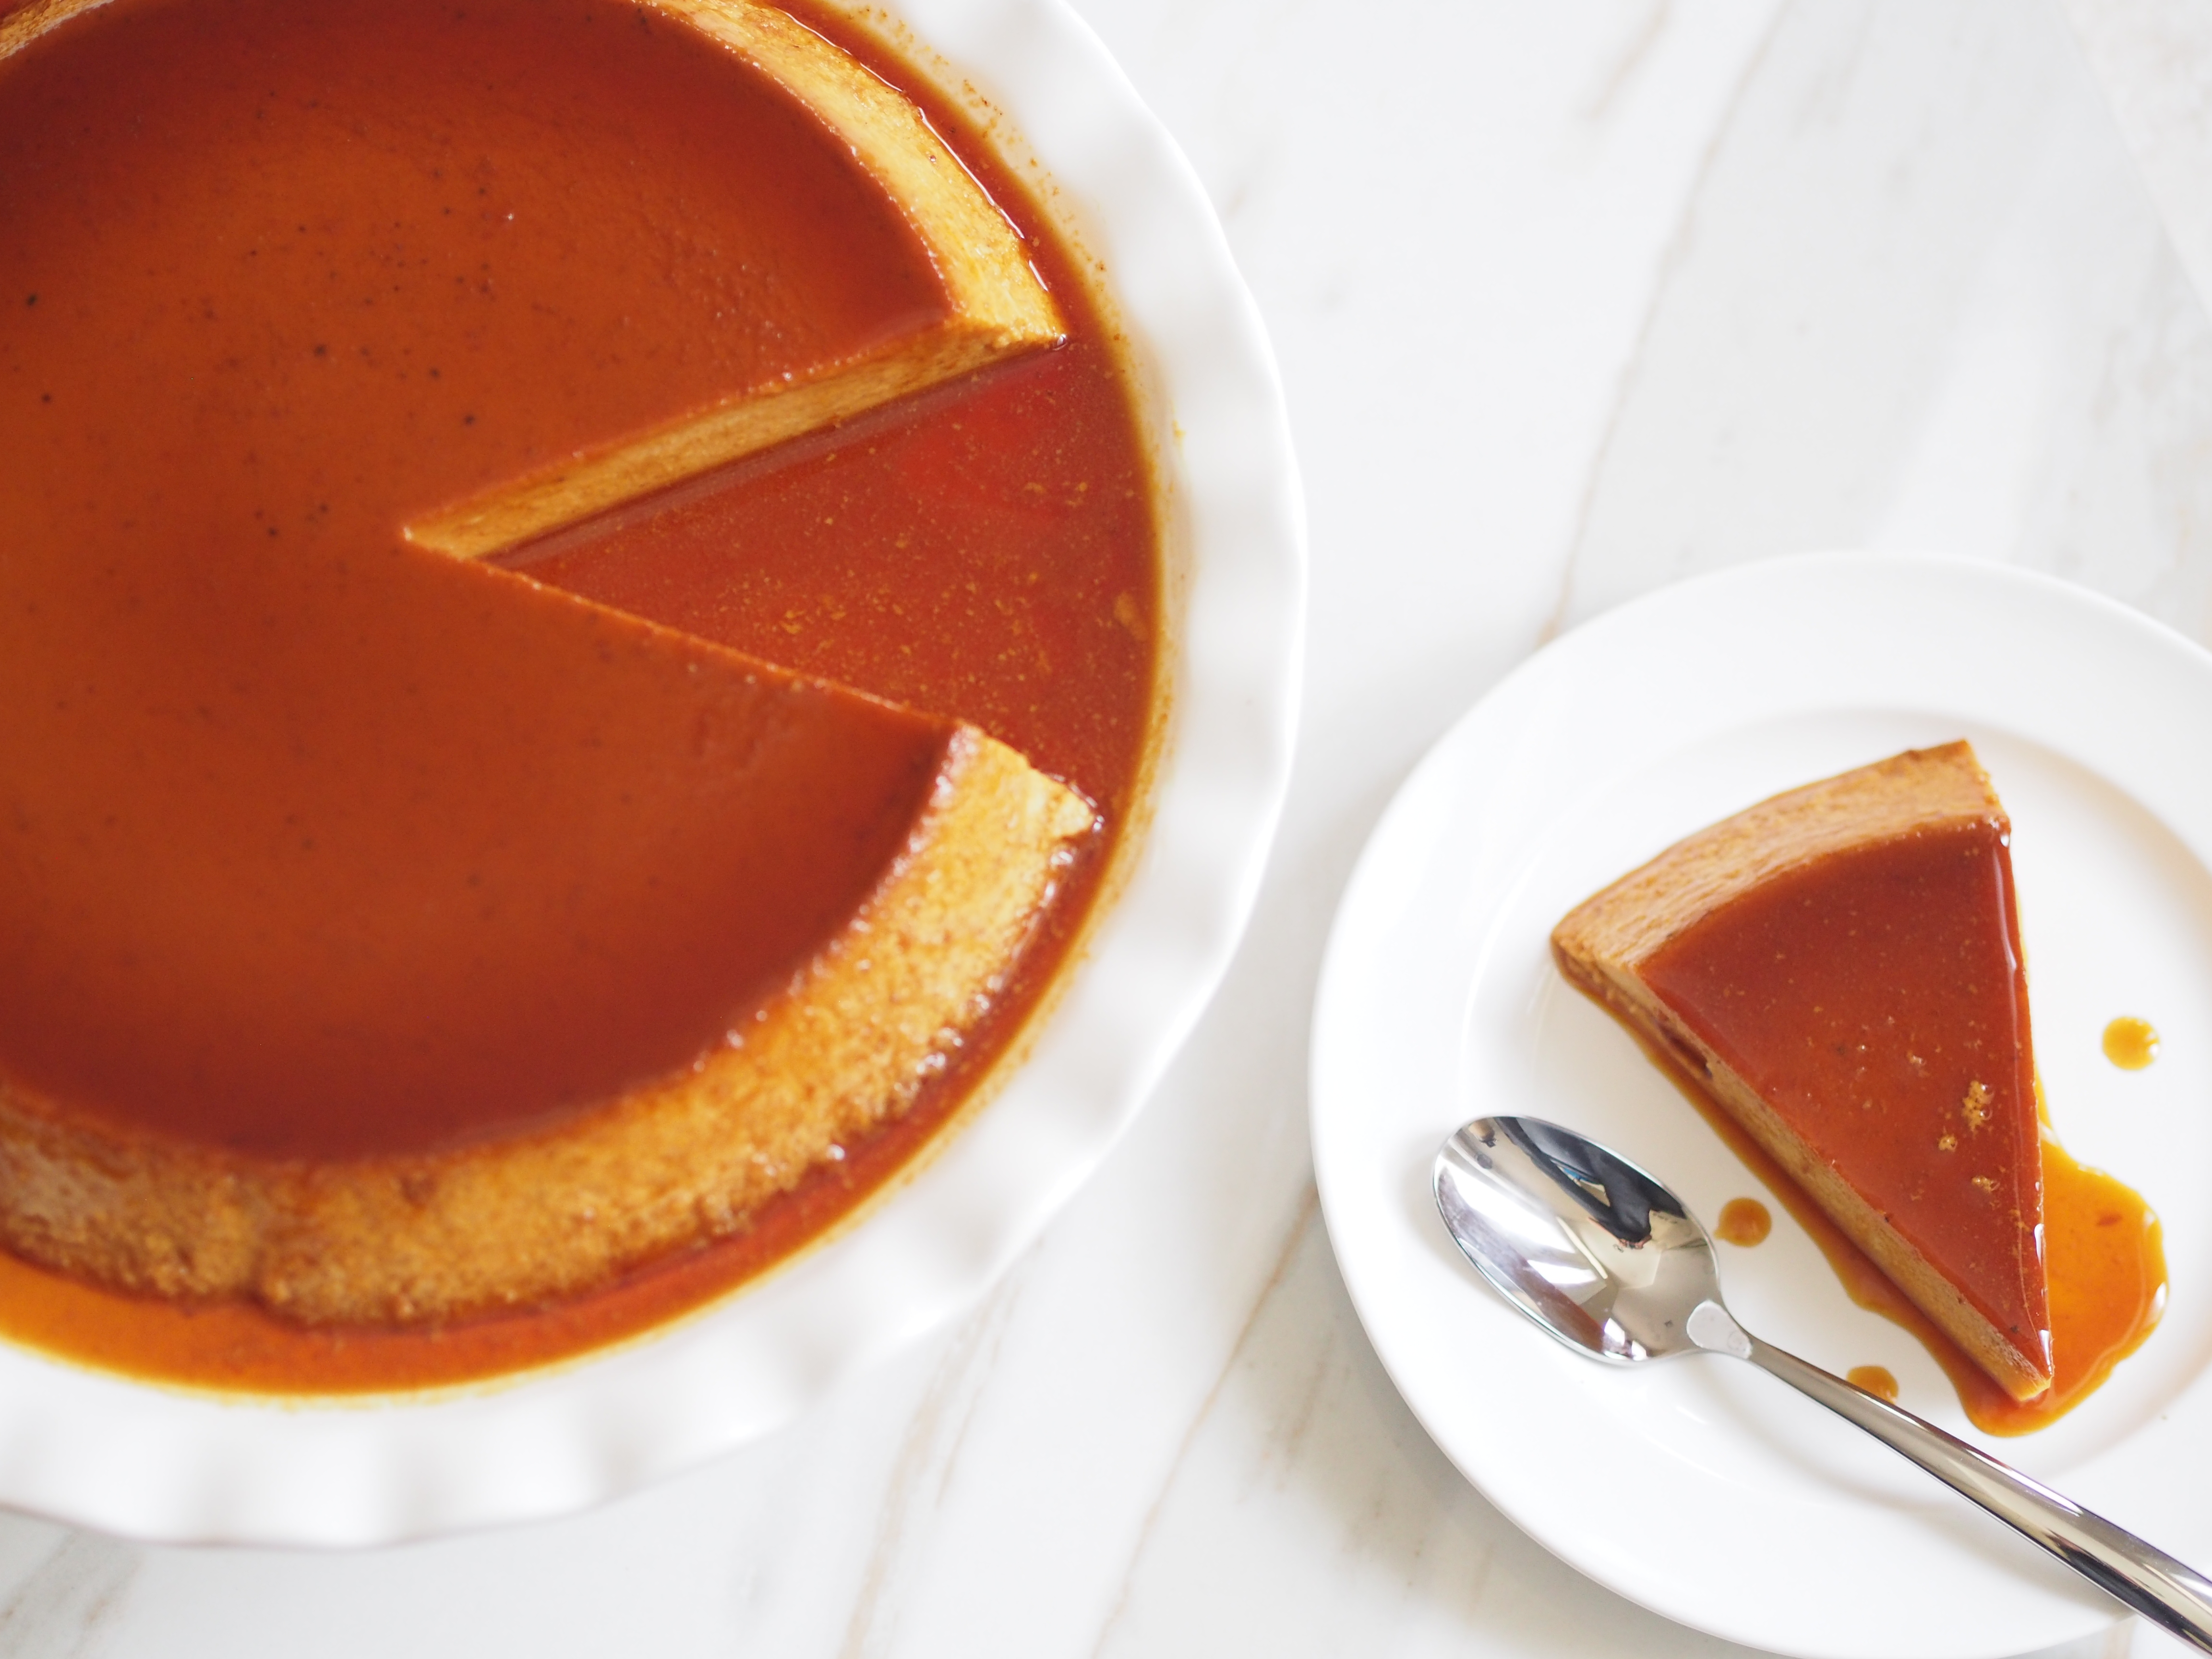 flan de calabaza plated with a slice served on the side